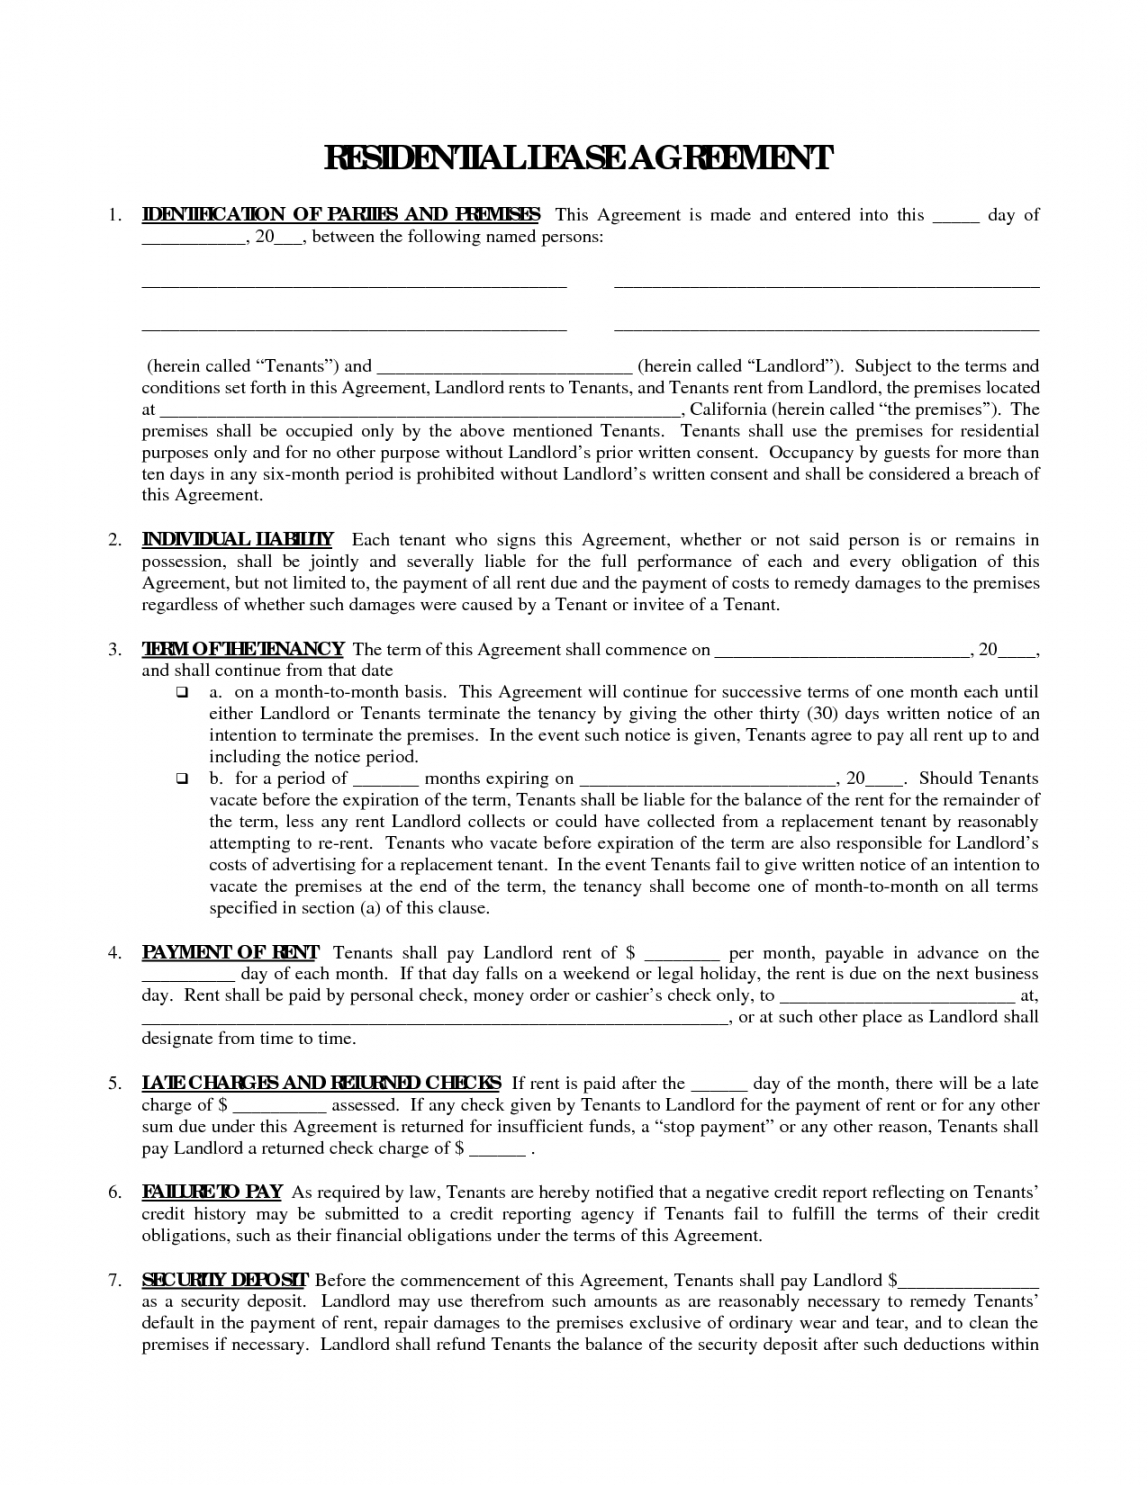 Free Printable Residential Free House Lease Agreement Residential Lease Rent To Own Home Contract Template Word